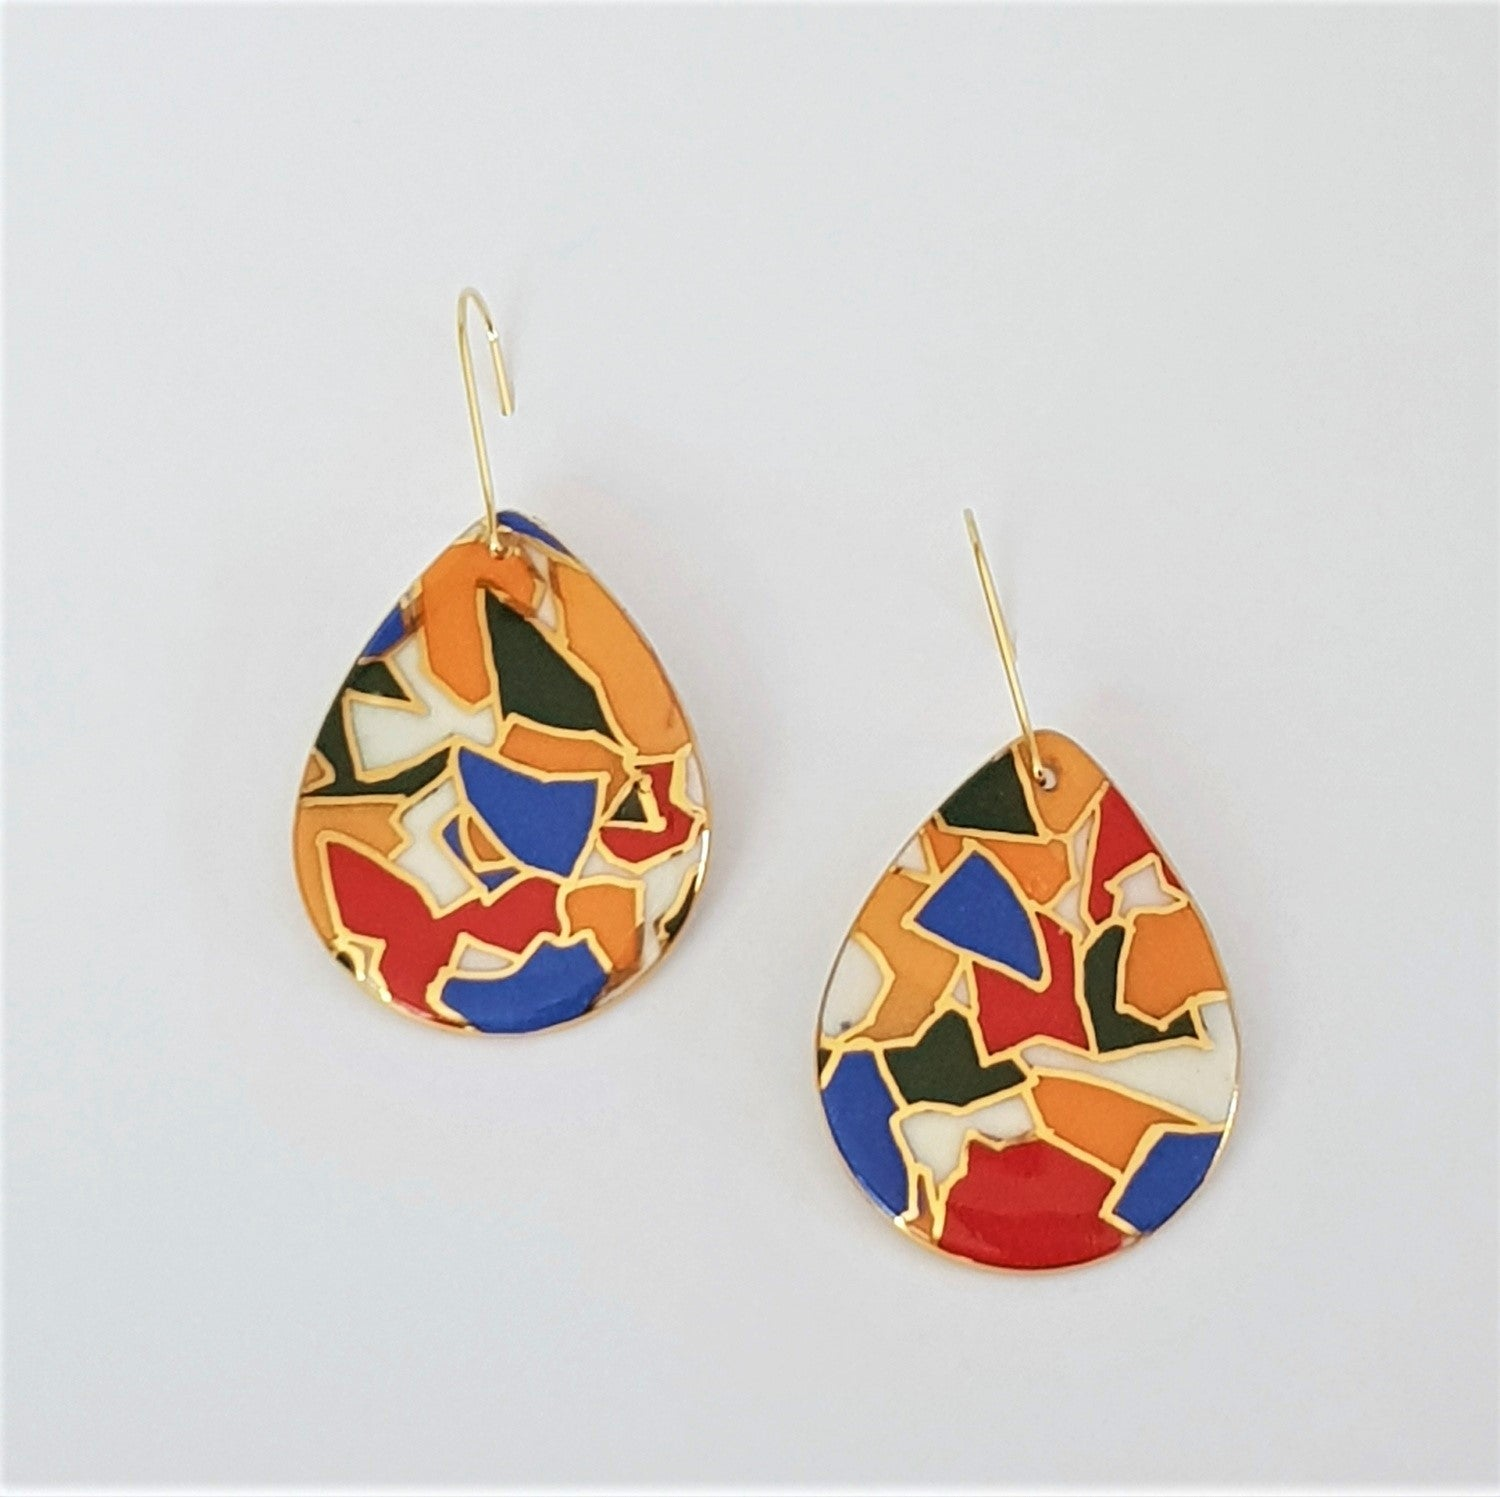 Drop style earrings in bright geometric pattern with gold